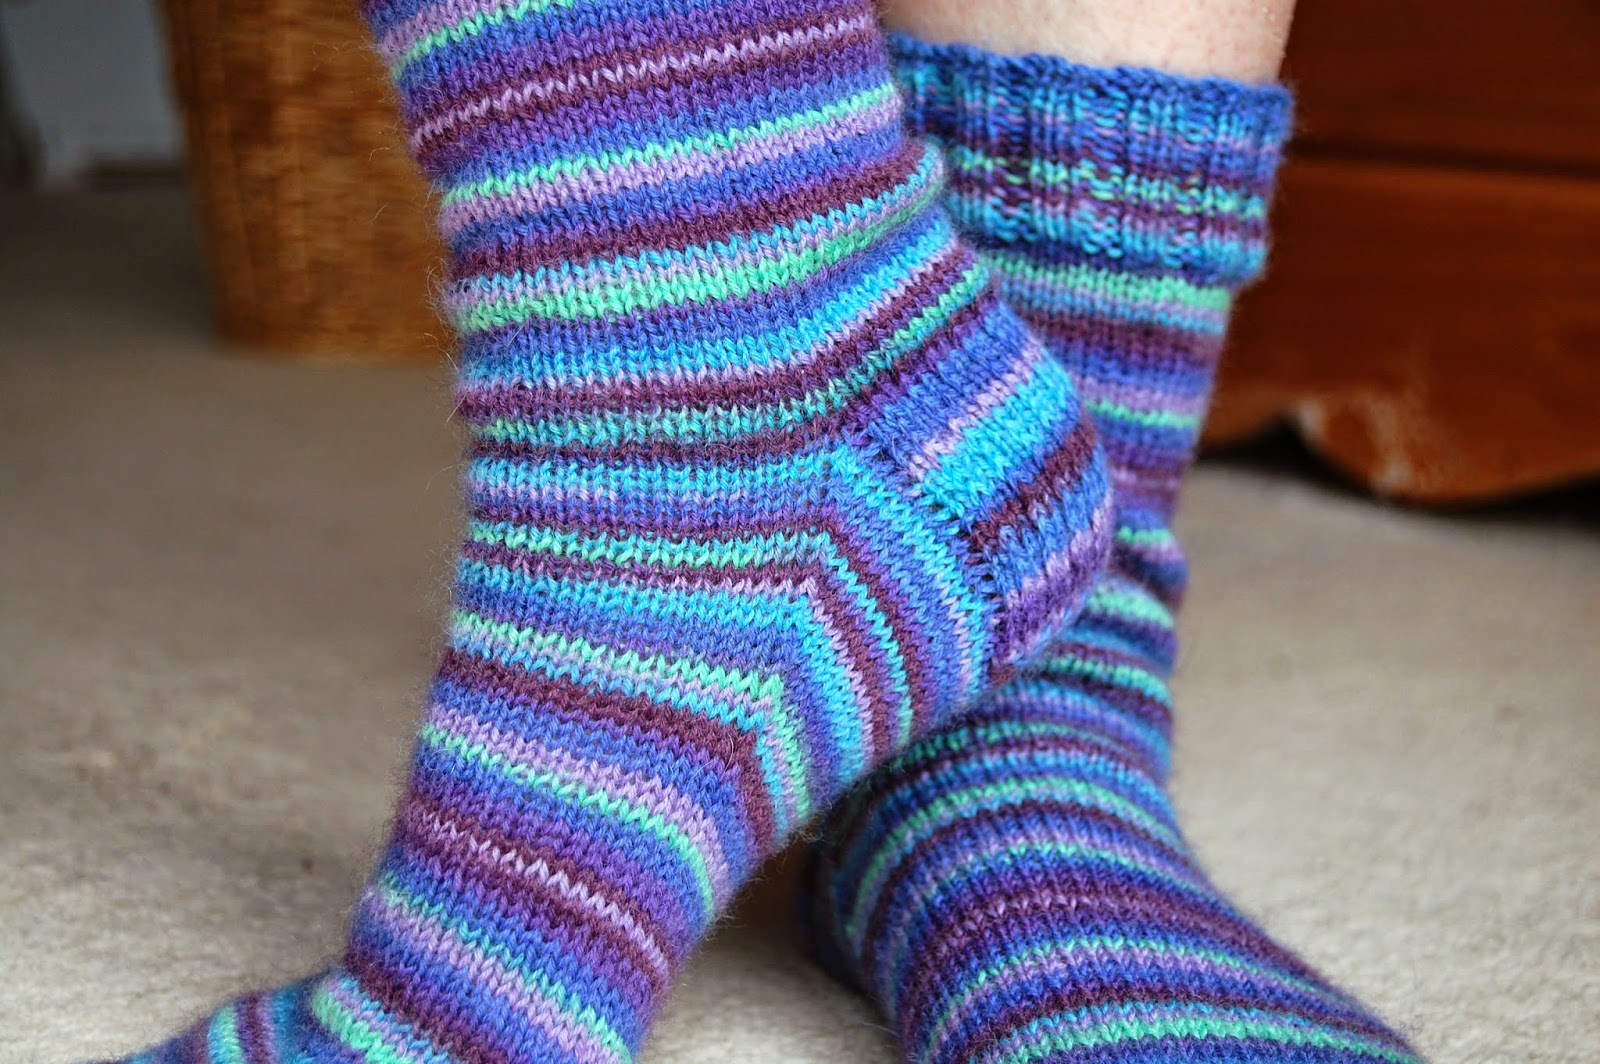 Knitting Pattern For Basic Socks : Winwick Mum: Basic 4ply sock pattern and tutorial - easy beginner sock knitting!